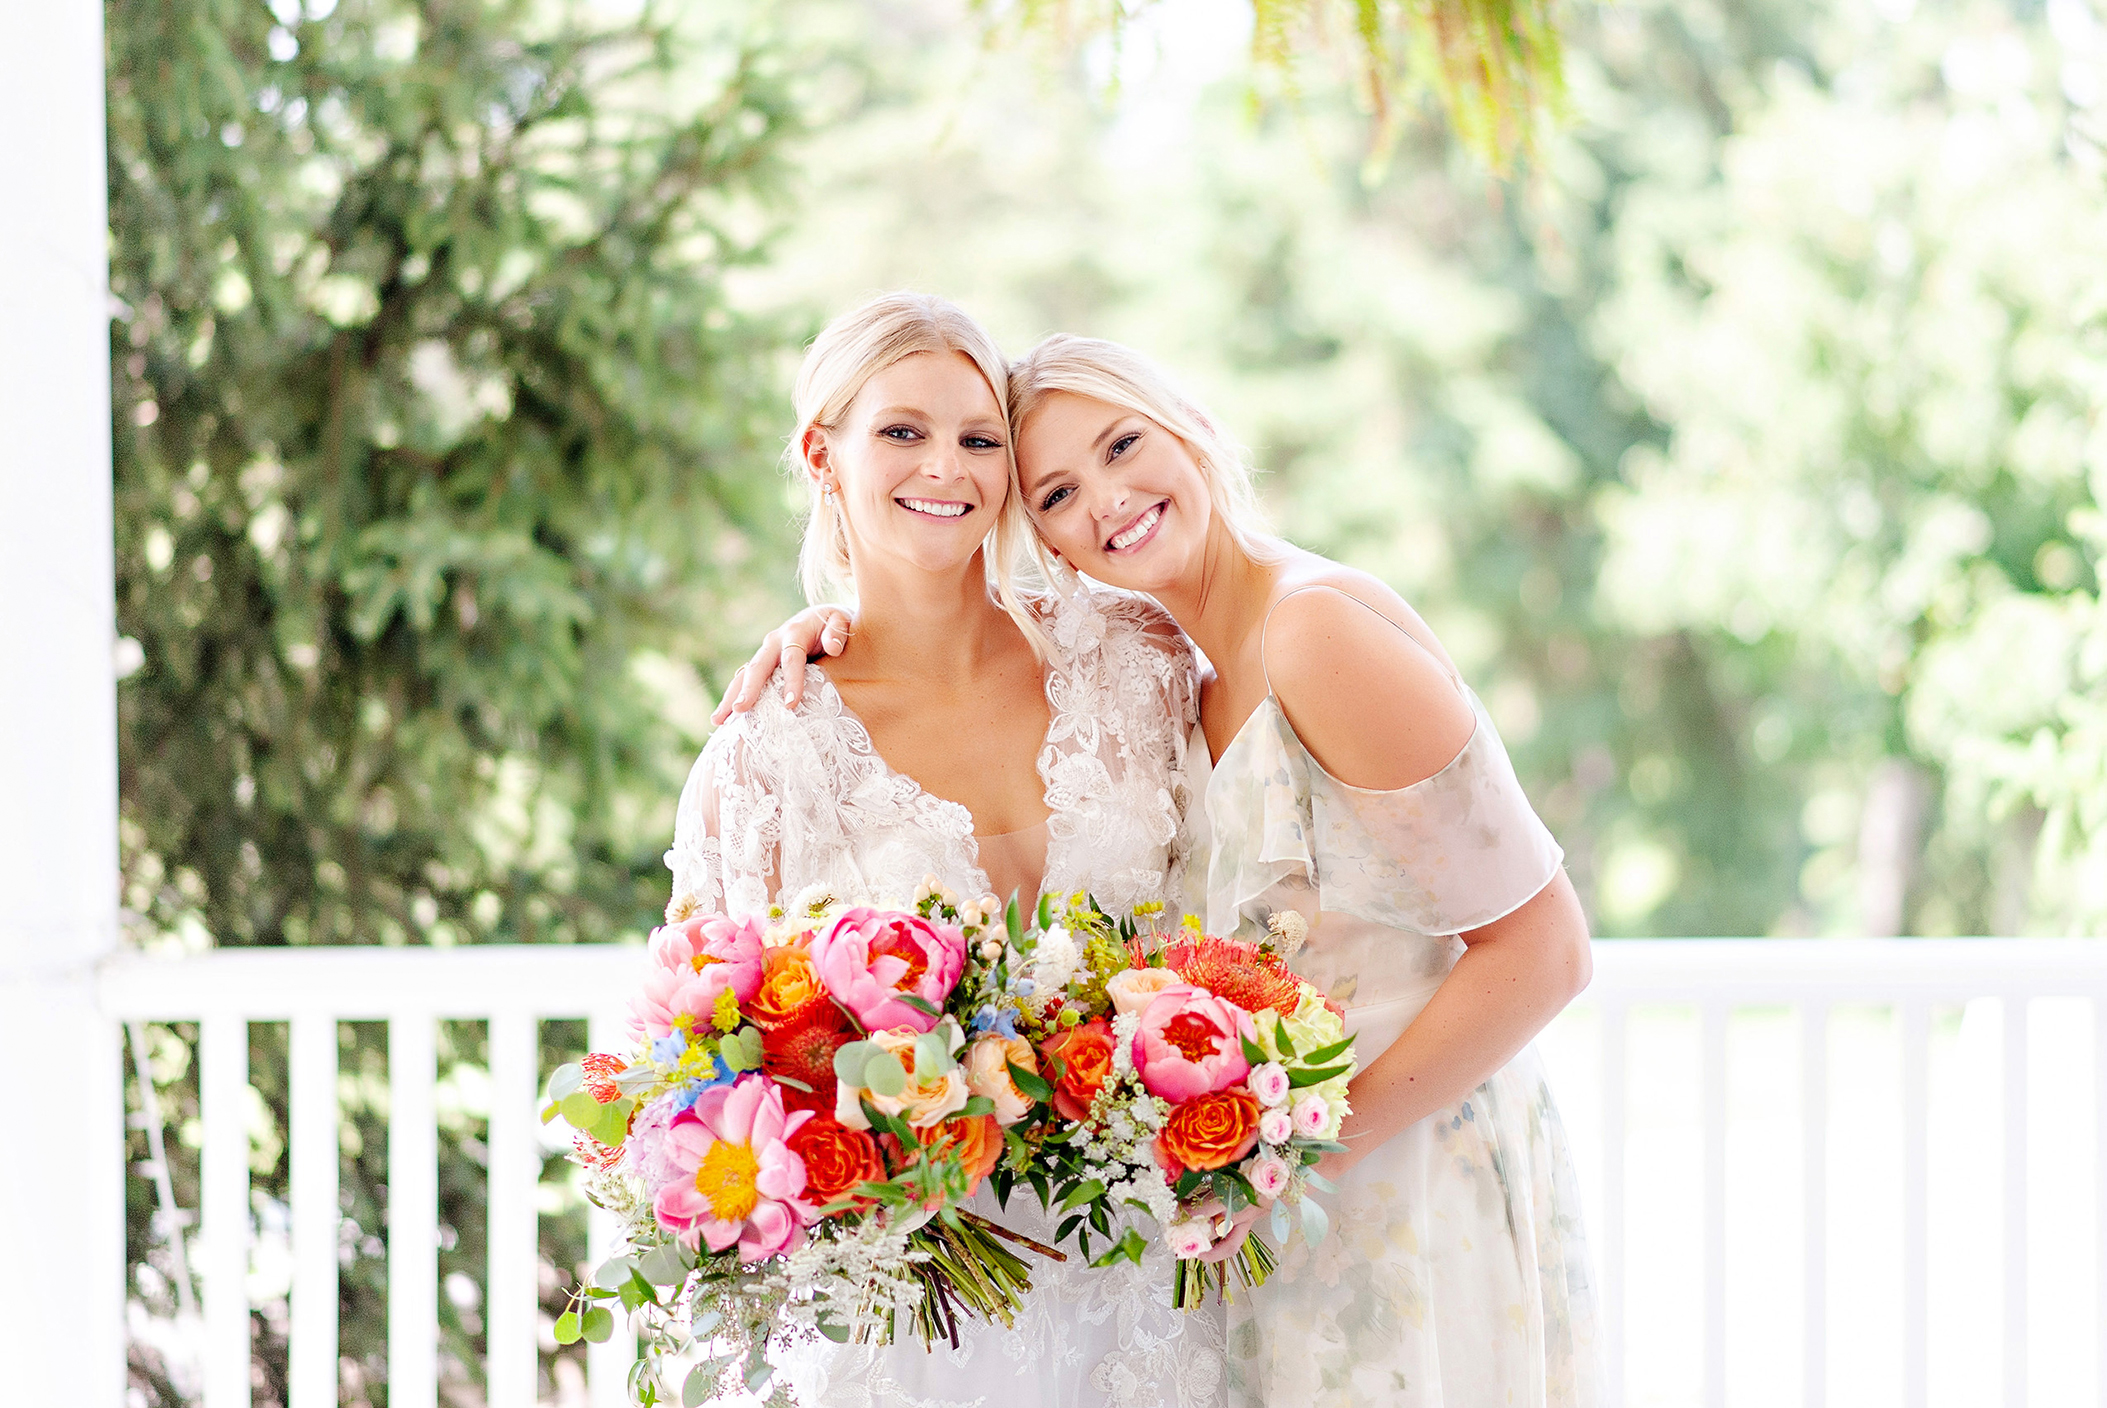 A spring bride and her maid with colorful wedding flower bouquets